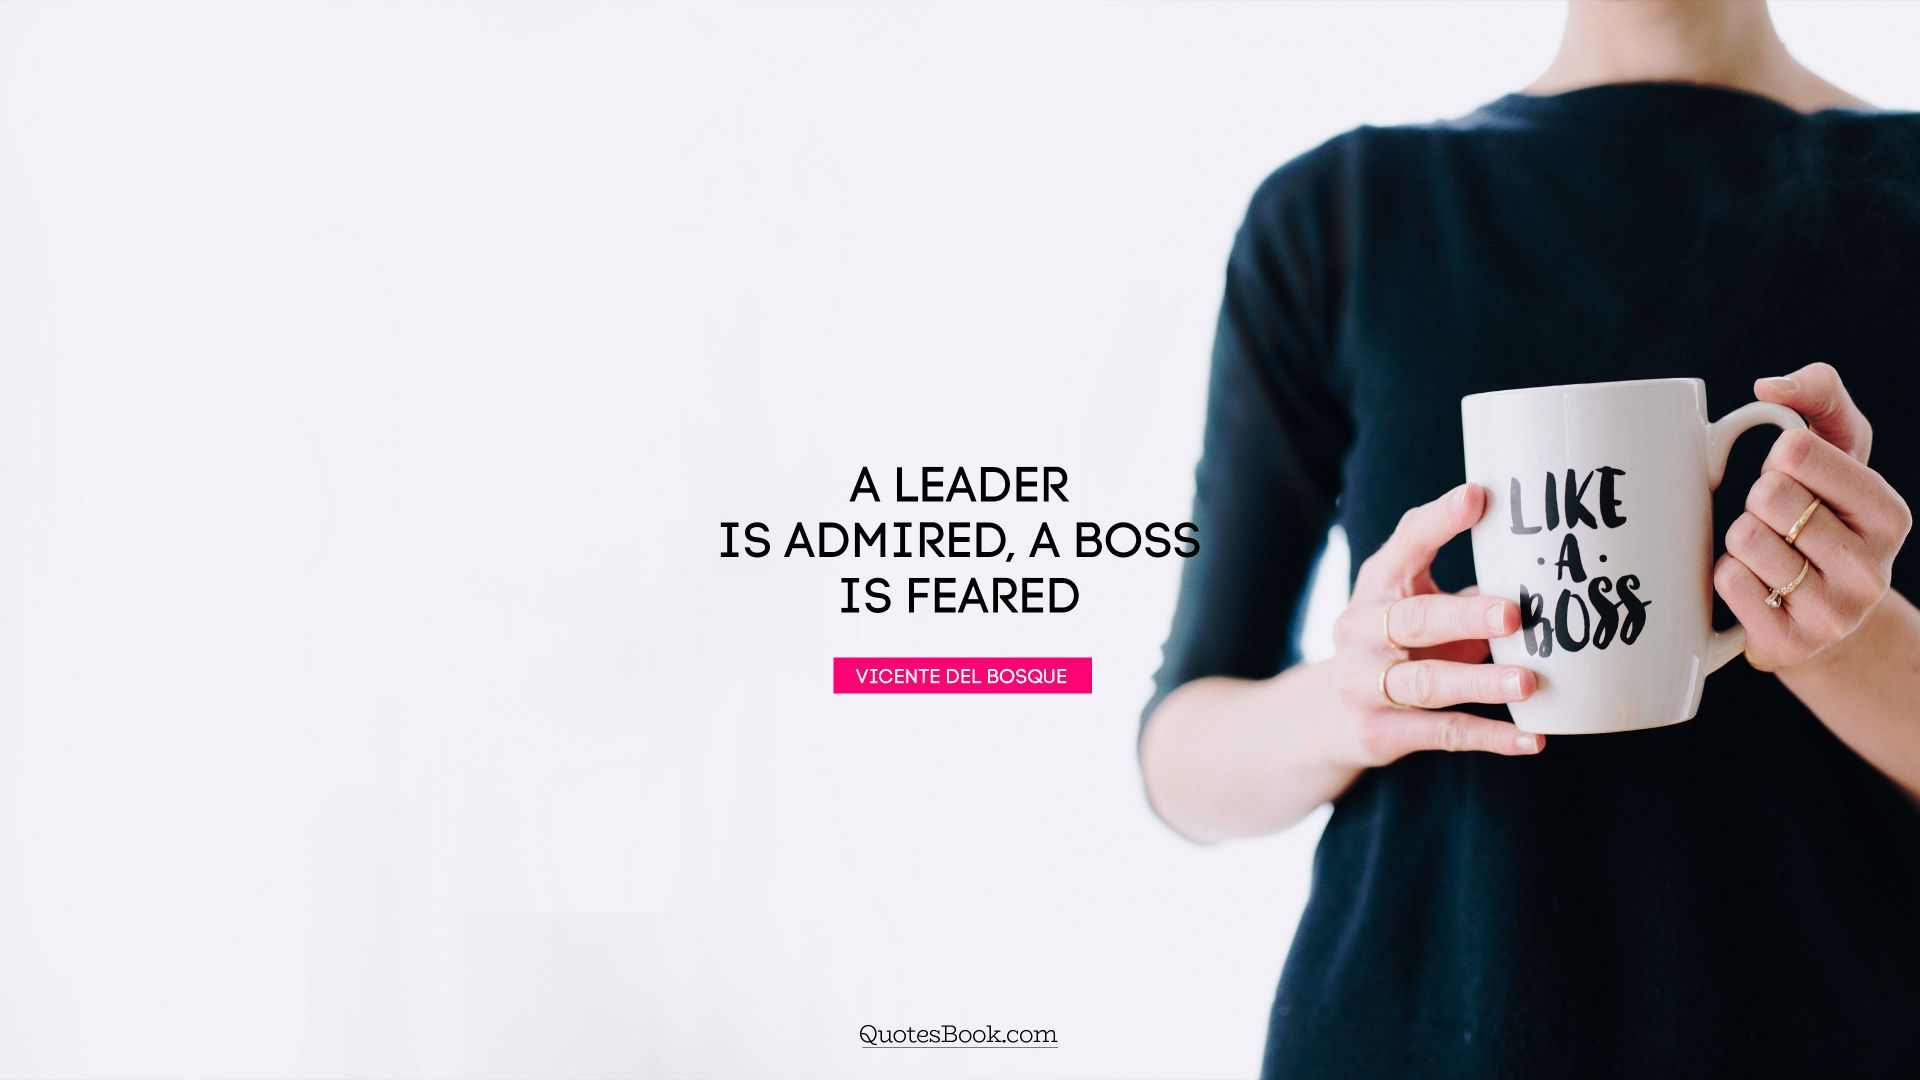 A leader is admired, a boss is feared. - Quote by Vicente del Bosque